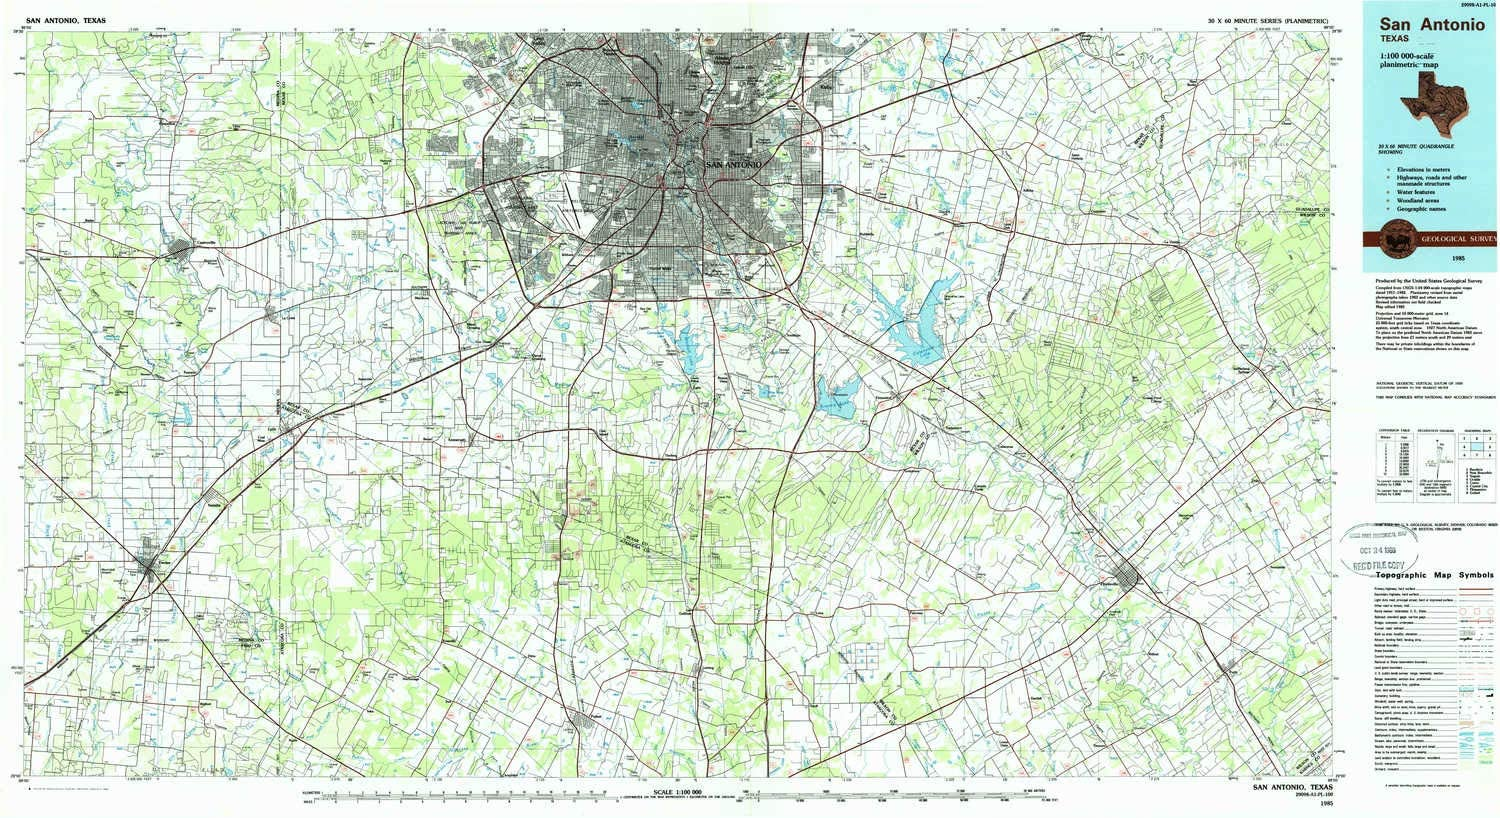 amazon com yellowmaps san antonio tx topo map 1 100000 scale 30 x 60 minute historical 1985 updated 1985 24 1 x 44 in paper sports outdoors amazon com